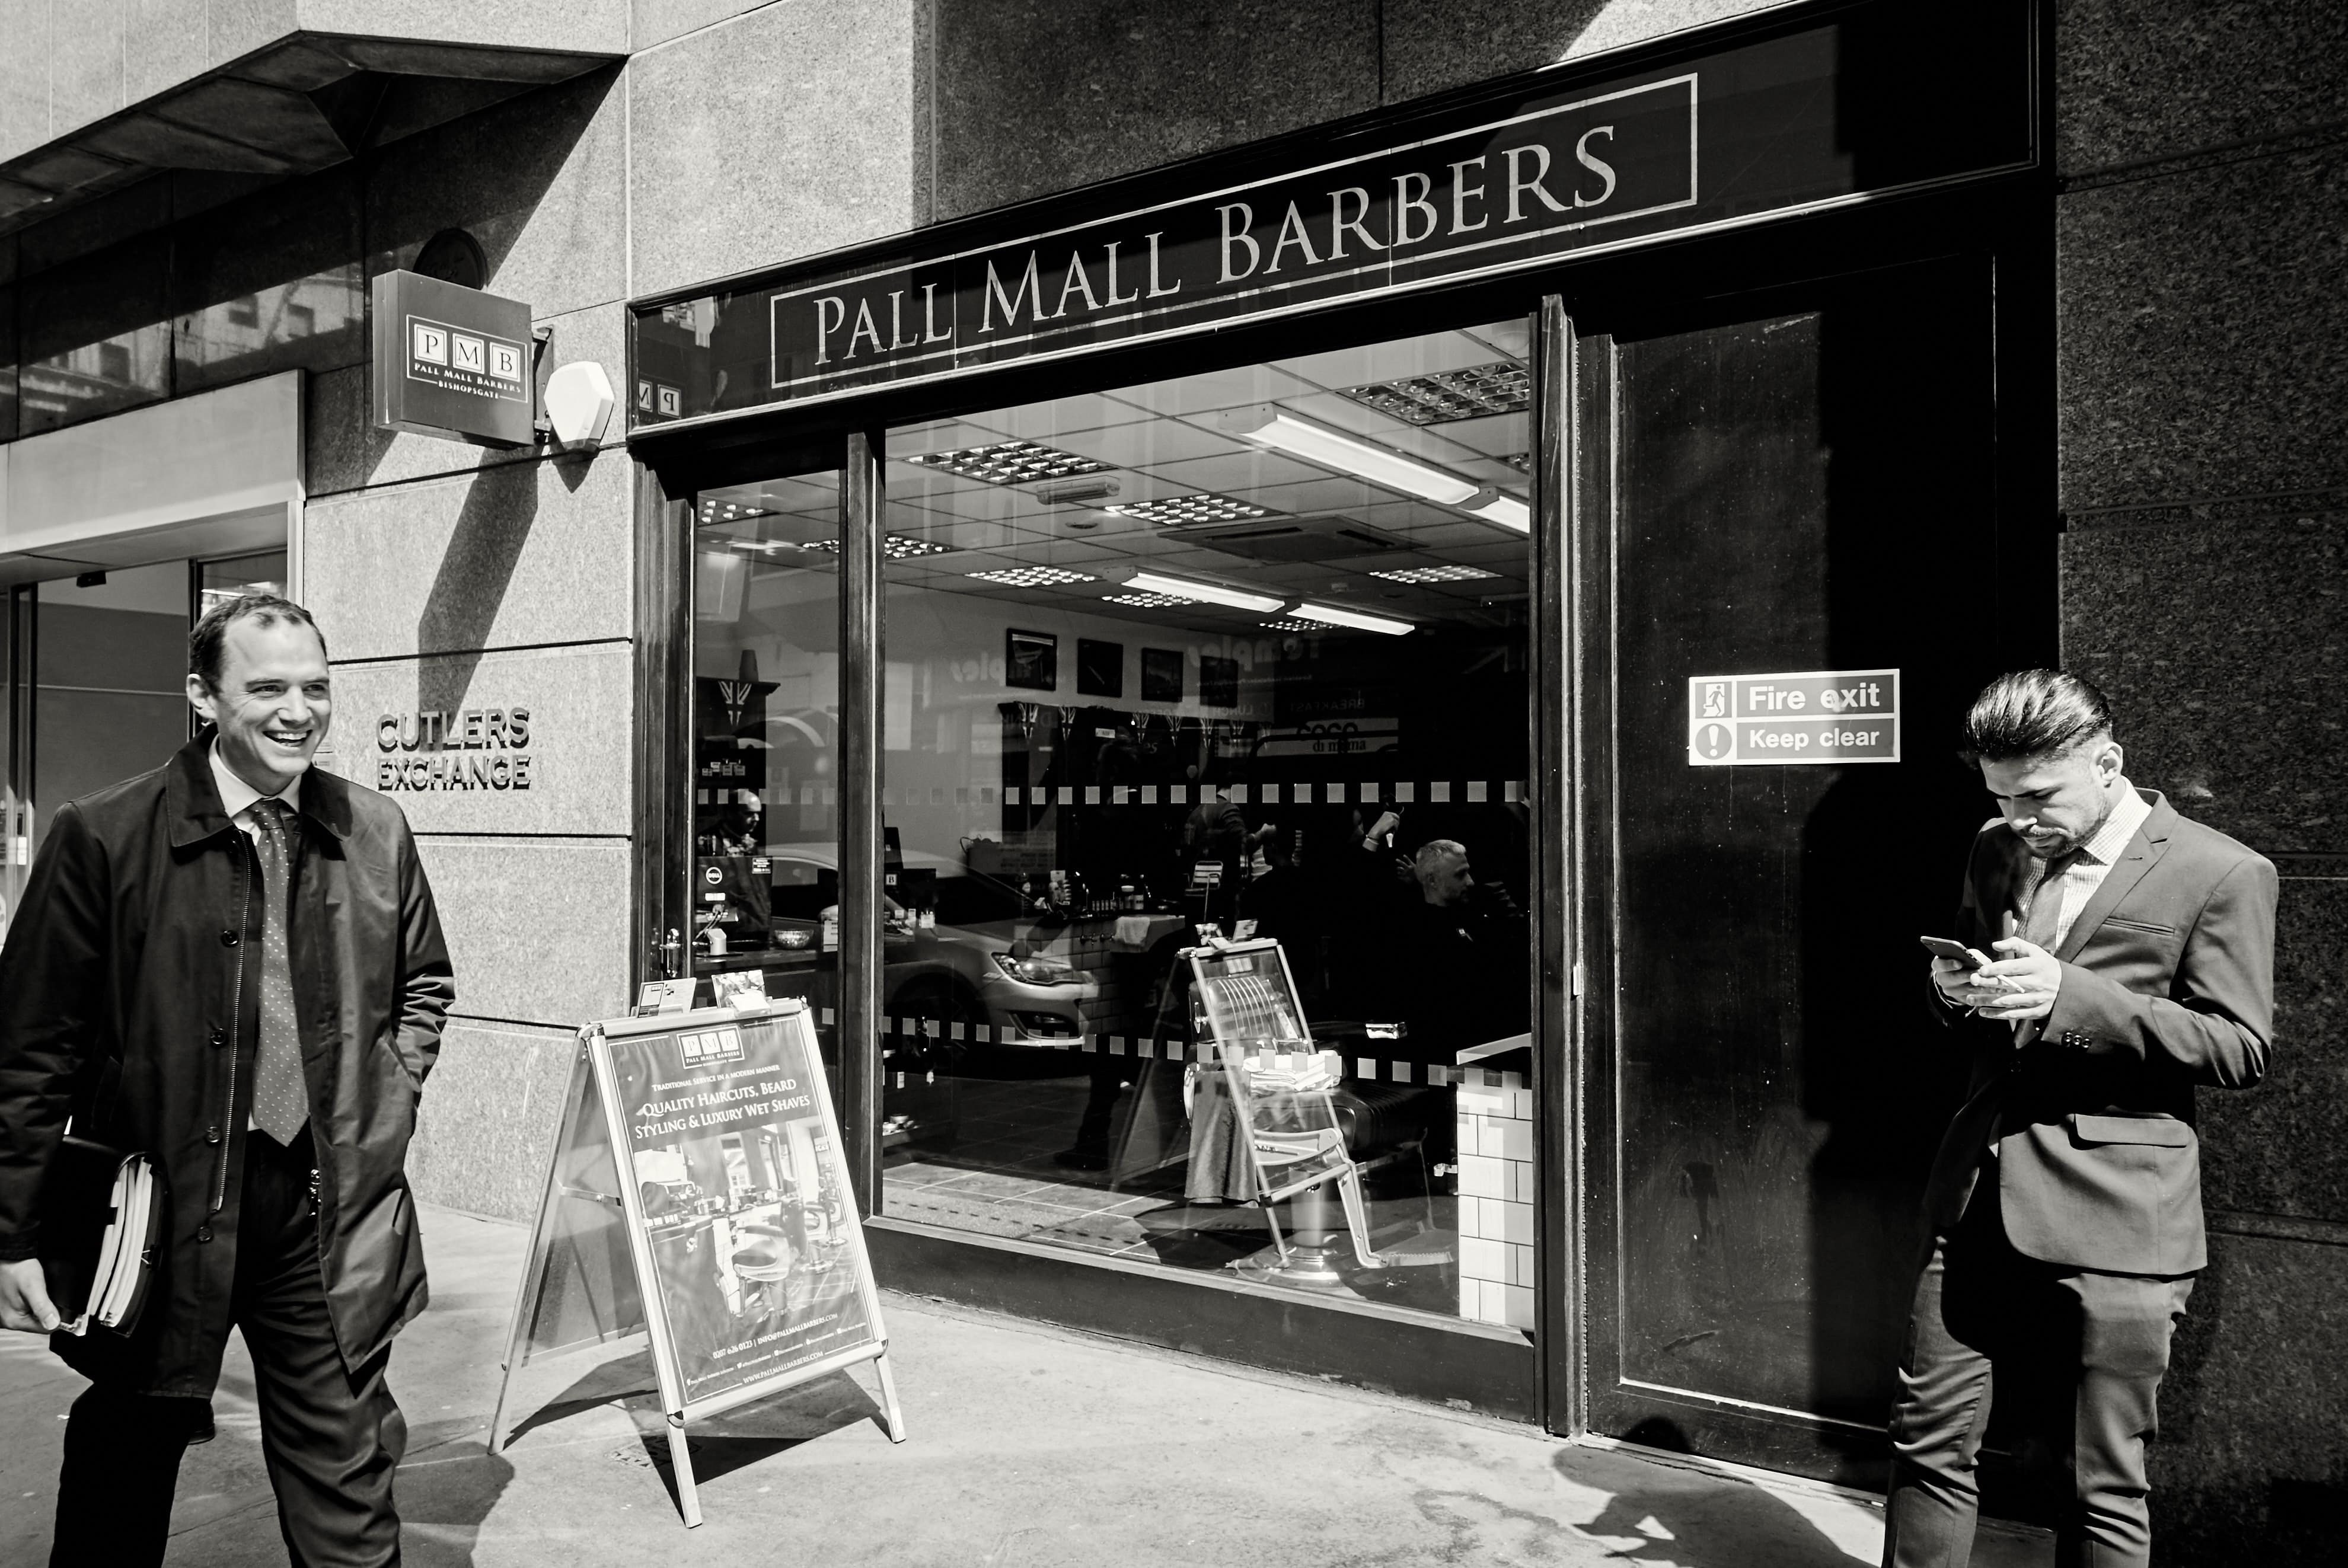 grayscale photo of people standing near Pall Mall Barbers